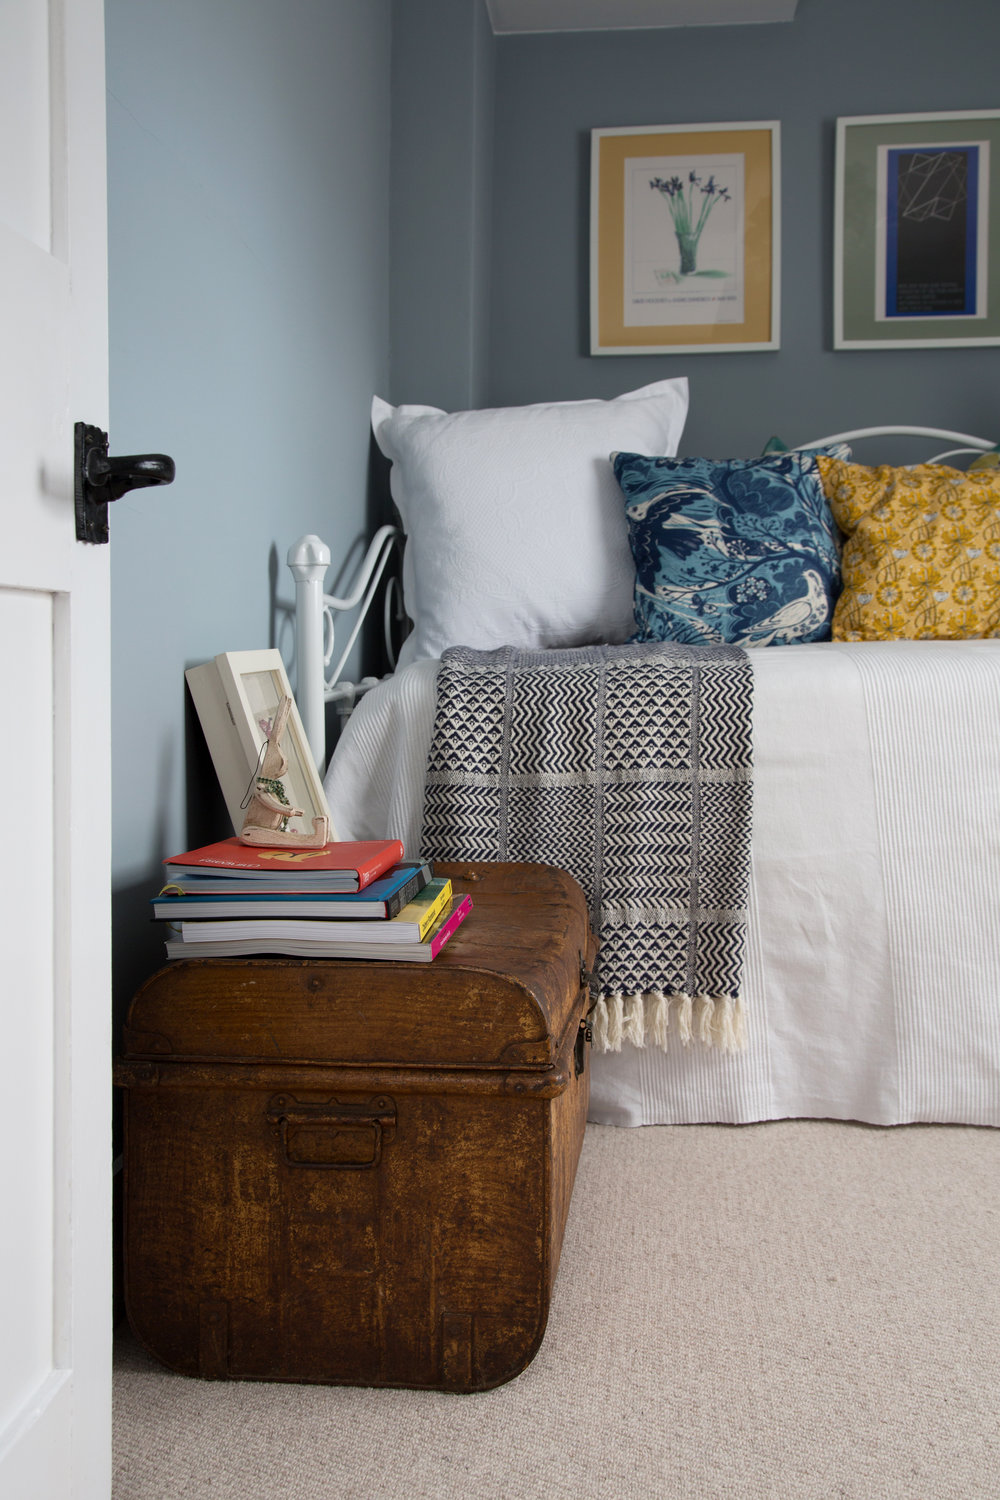 An Old Wooden Trunk Makes a Perfect End Table in th Bright Bedroom of a Grade II Listed Holiday Home in Battle East Sussex – Interior Design by Smartstyle Interiors